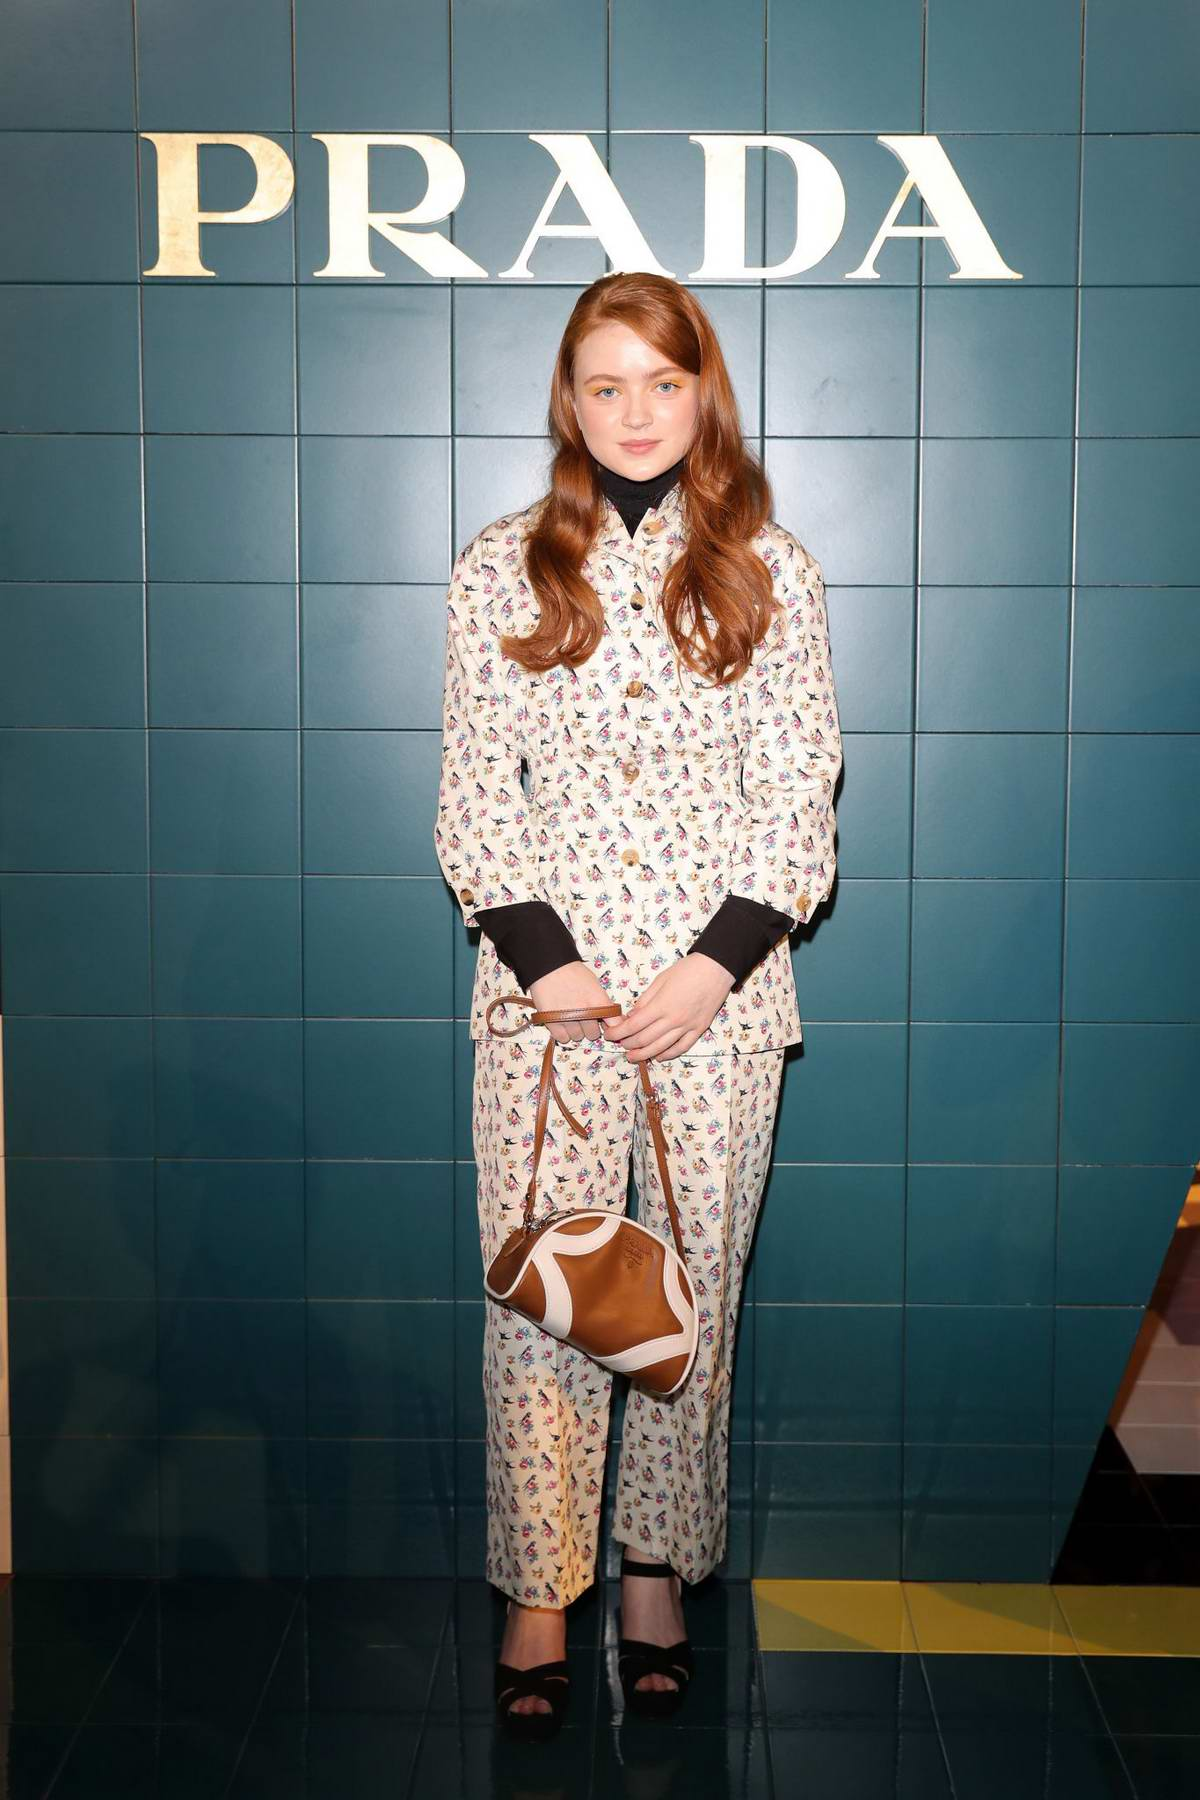 Sadie Sink attends the Prada show during the Milan Fashion Week Spring/Summer 2020 in Milan, Italy